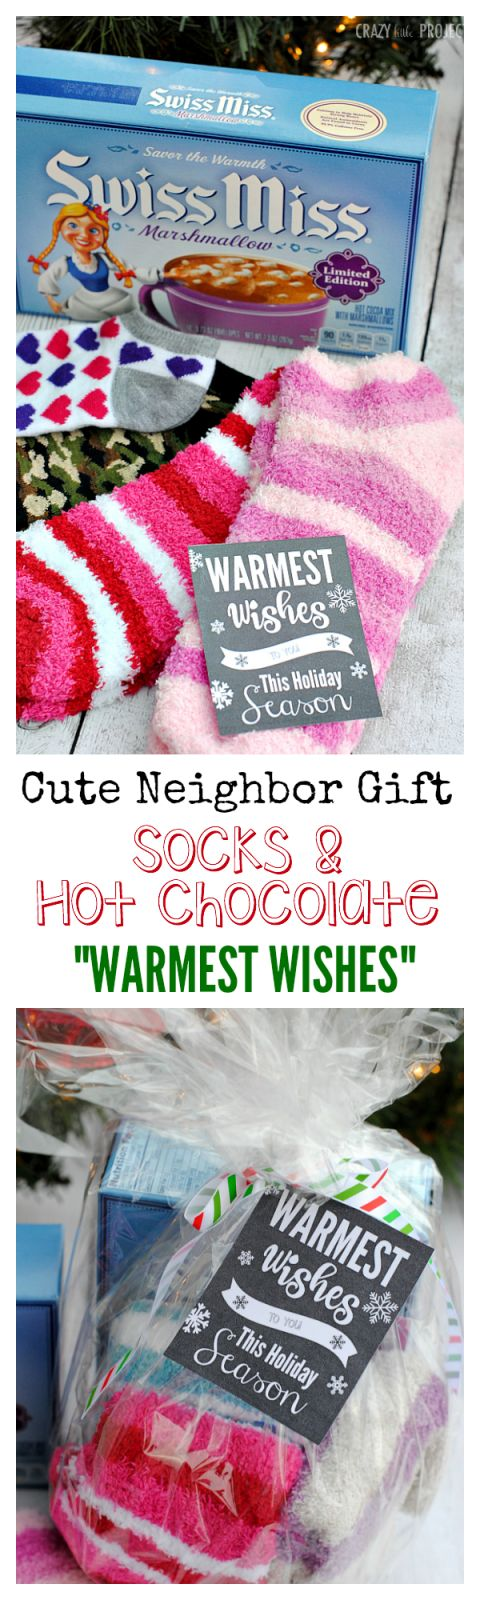 Warmest Wishes Neighbor Gift Idea